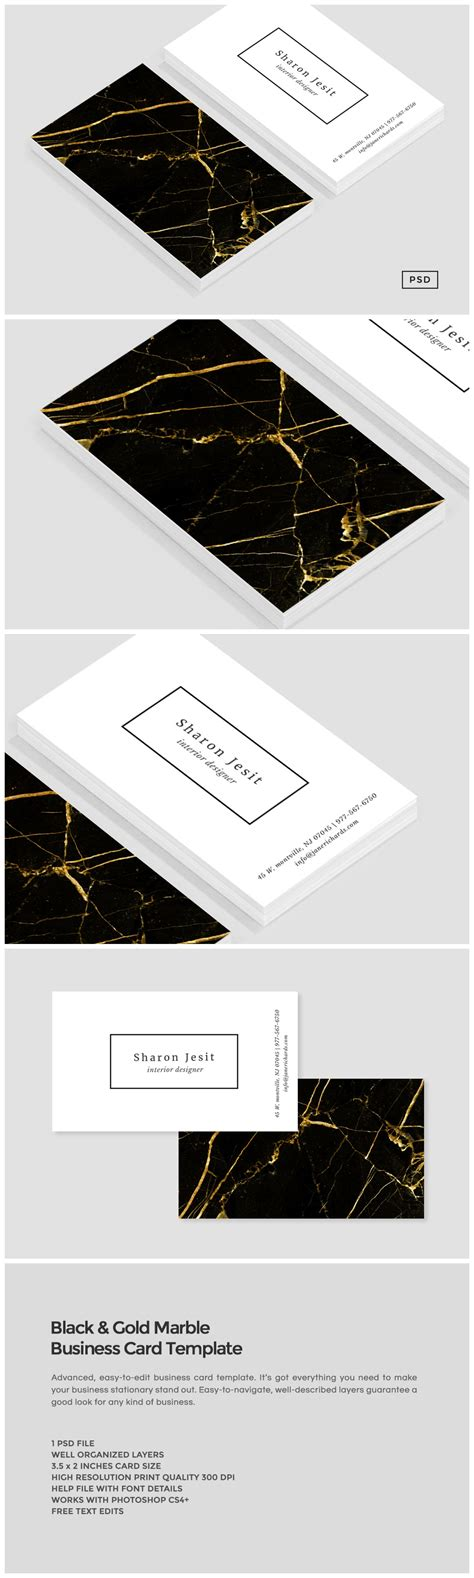 gold business card template black gold marble business card business card